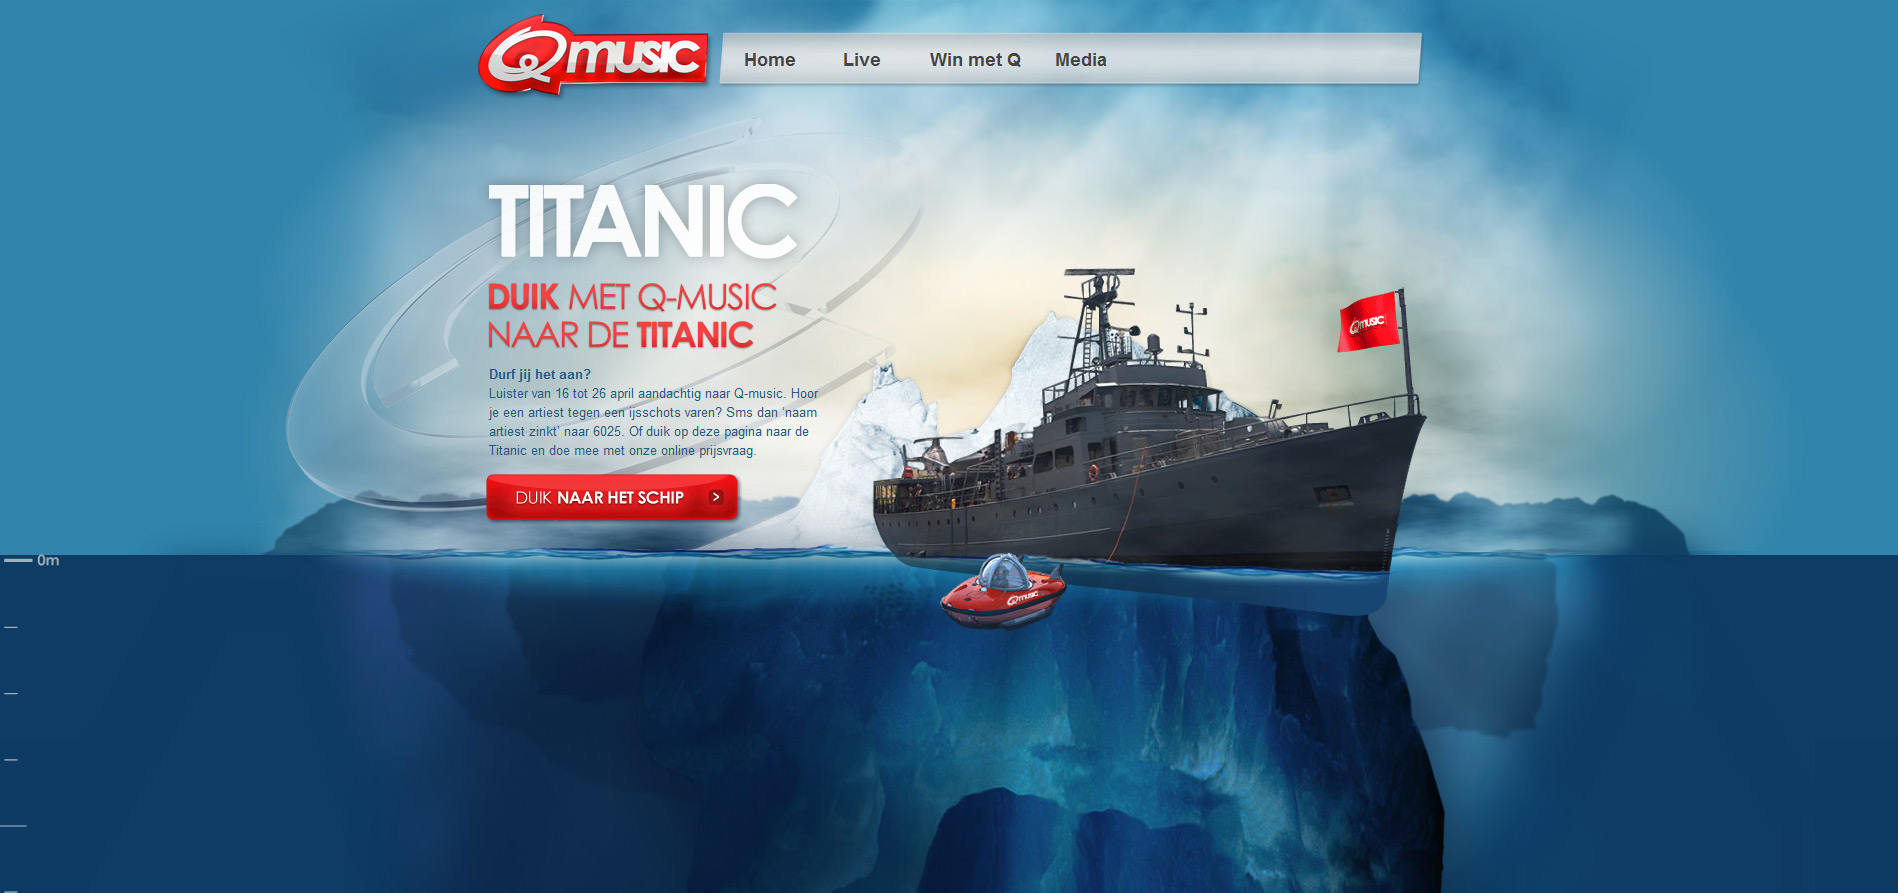 Q music Titanic Website Screenshot